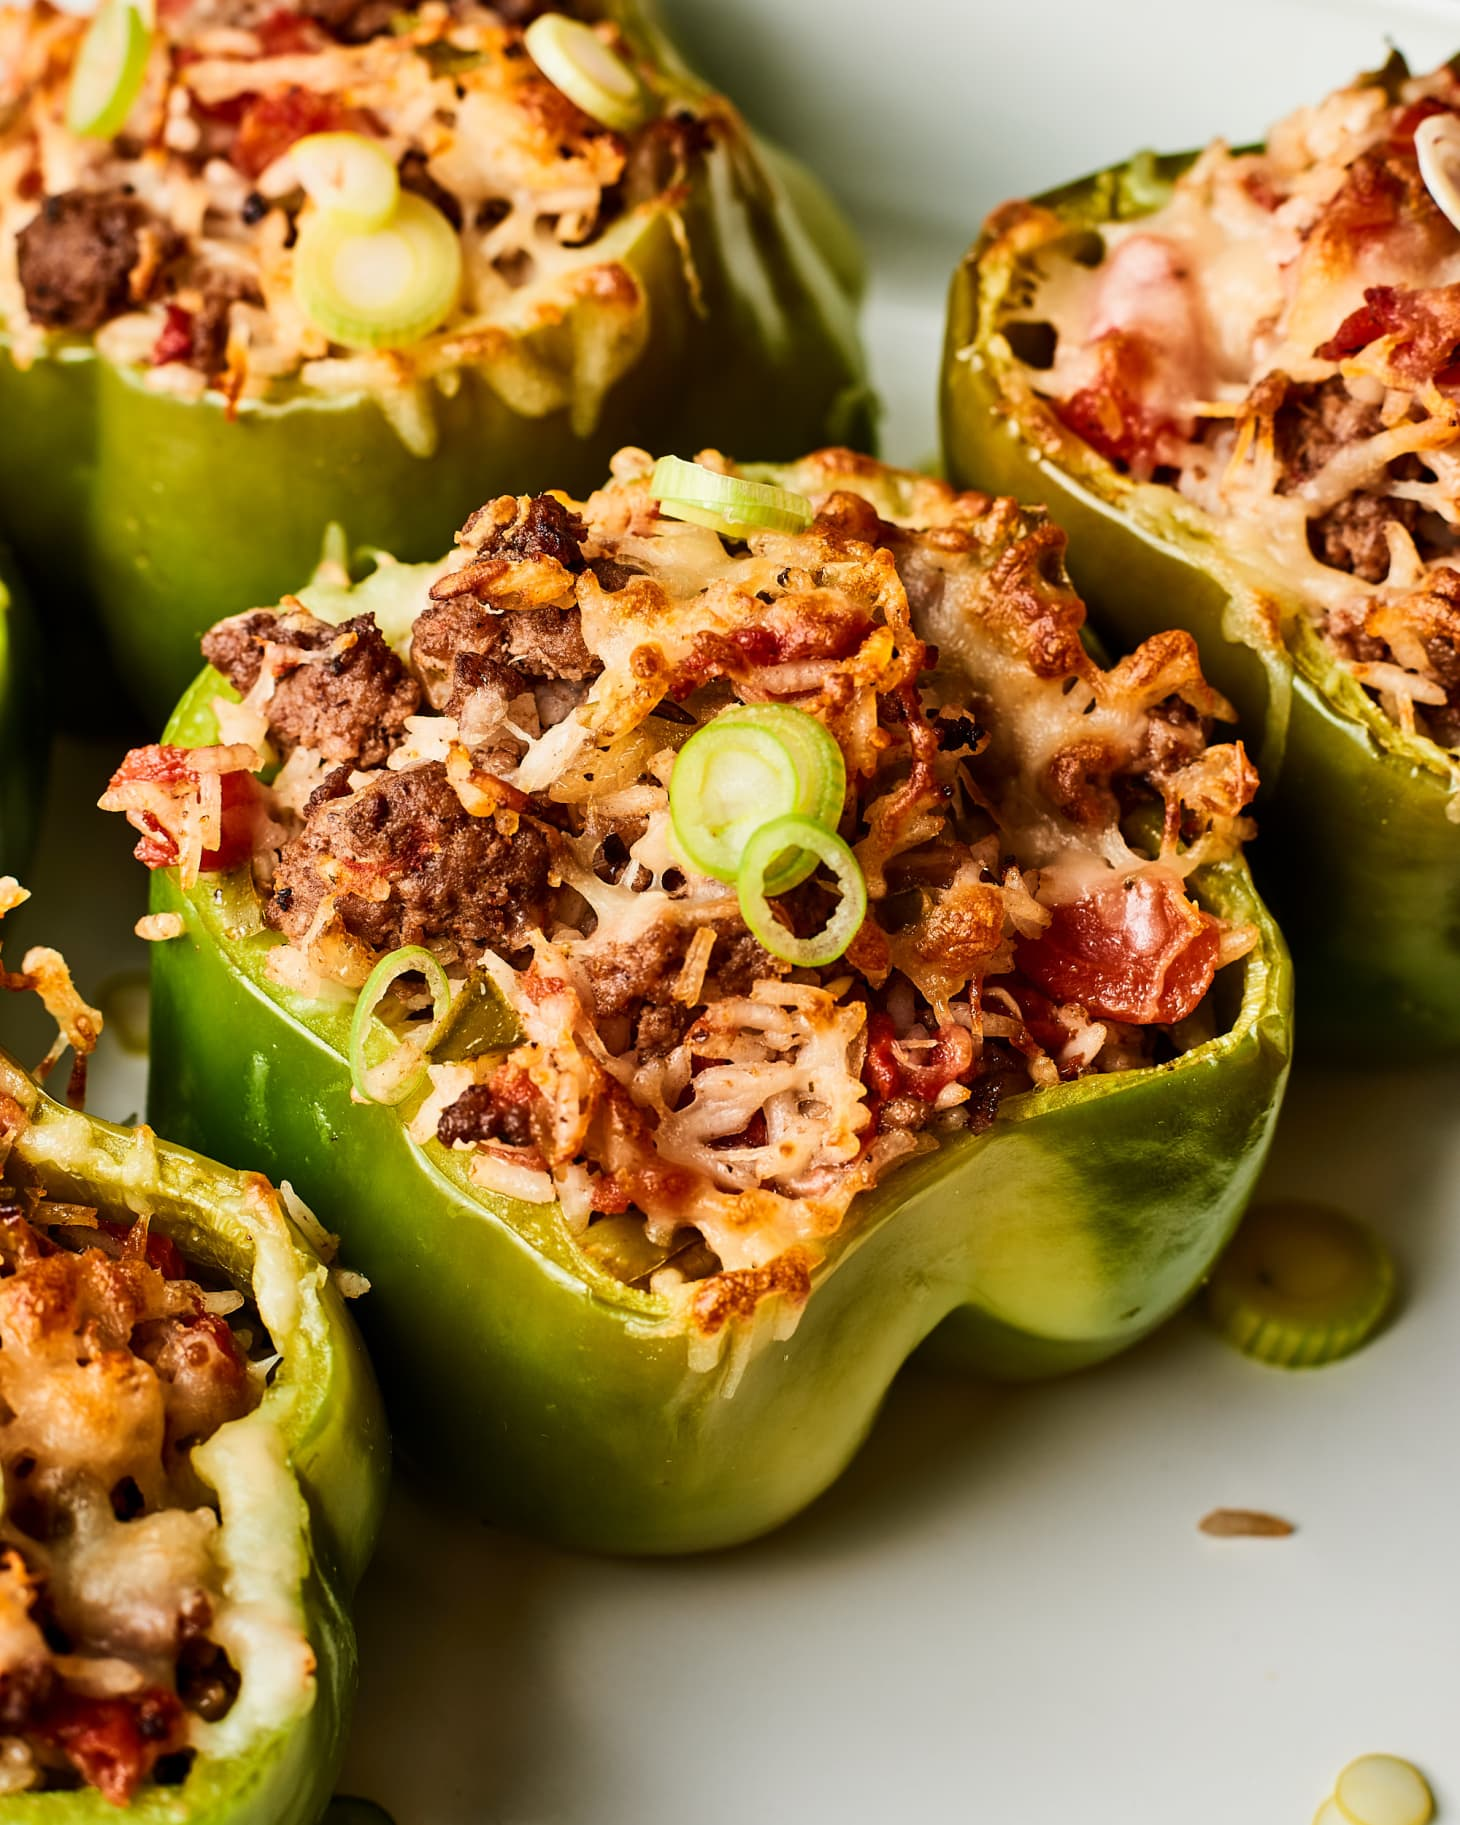 Stuffed Peppers In Microwave Oven: How To Make Stuffed Peppers